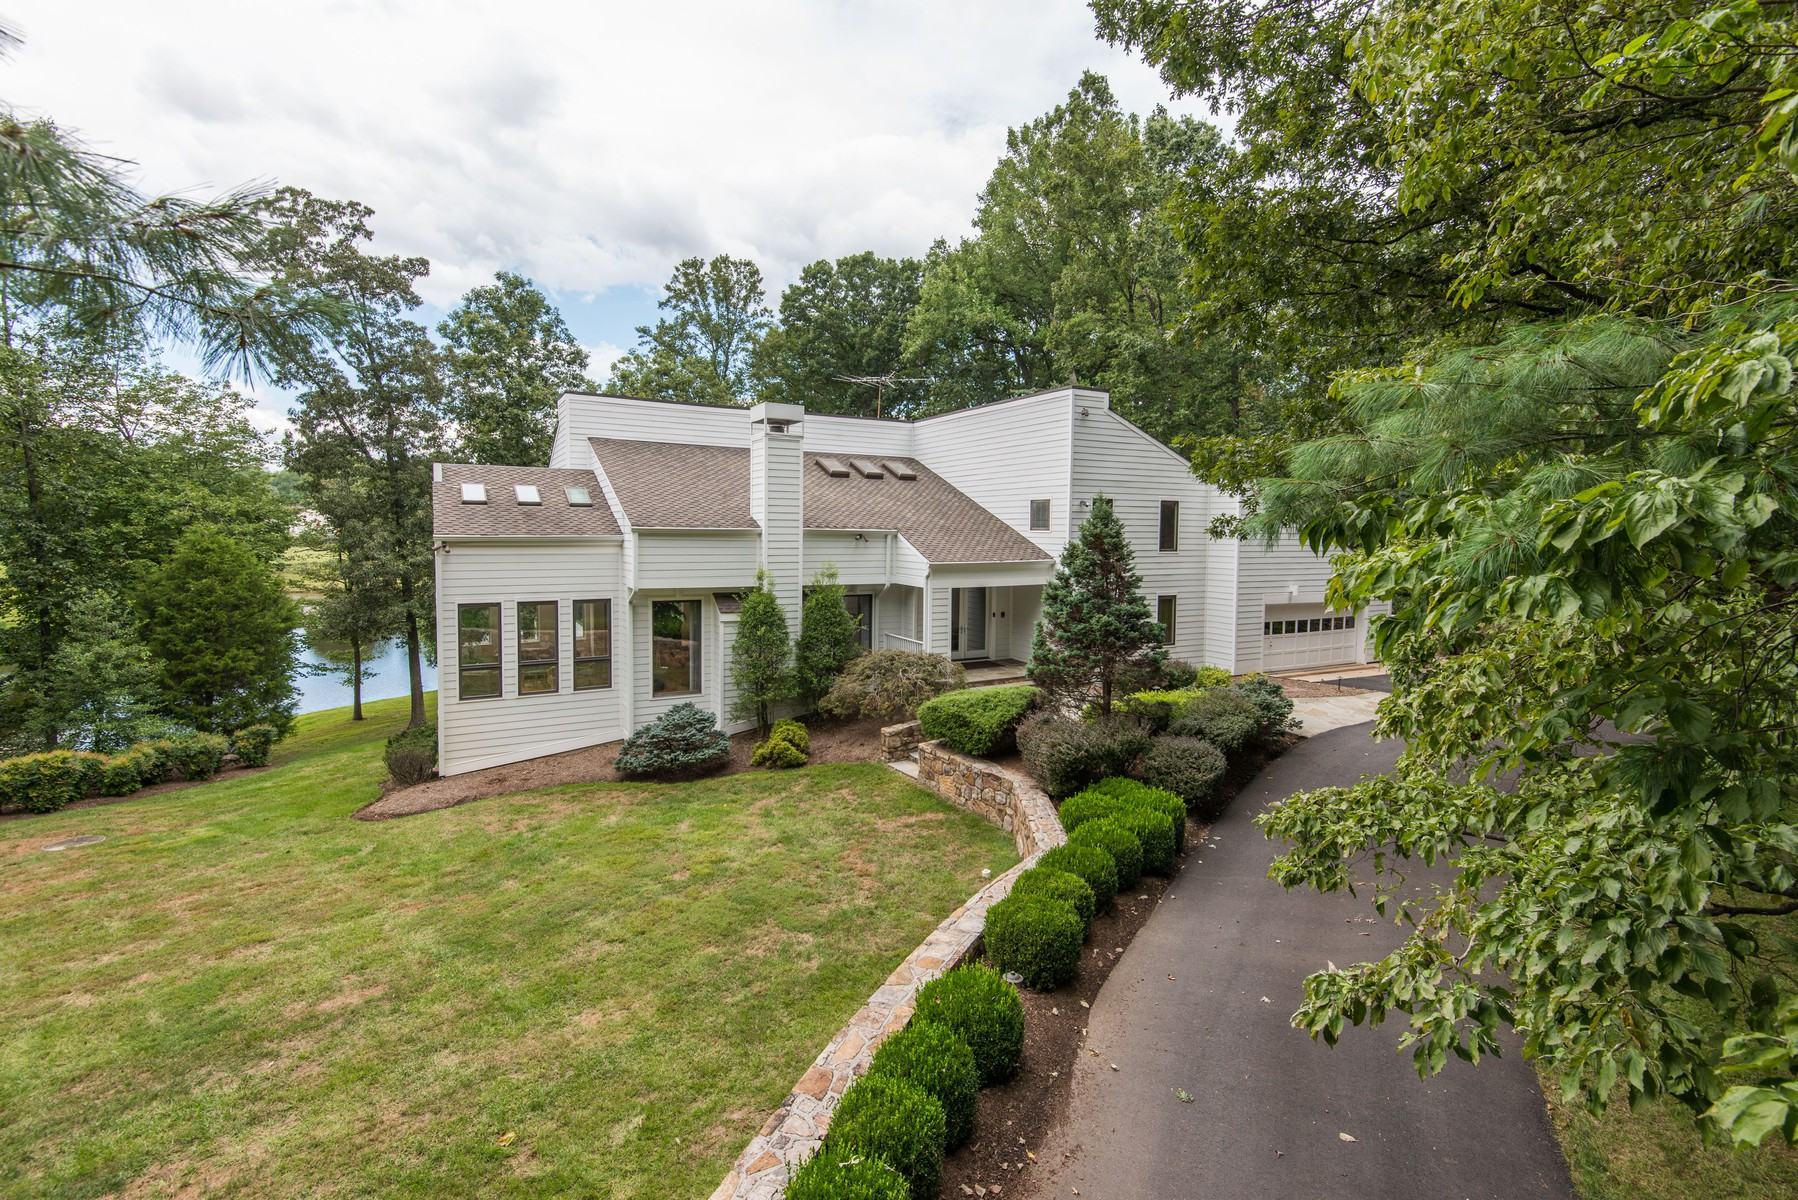 Additional photo for property listing at 10896 Lake Windermere Drive, Great Falls  Great Falls, Βιρτζινια 22066 Ηνωμενεσ Πολιτειεσ